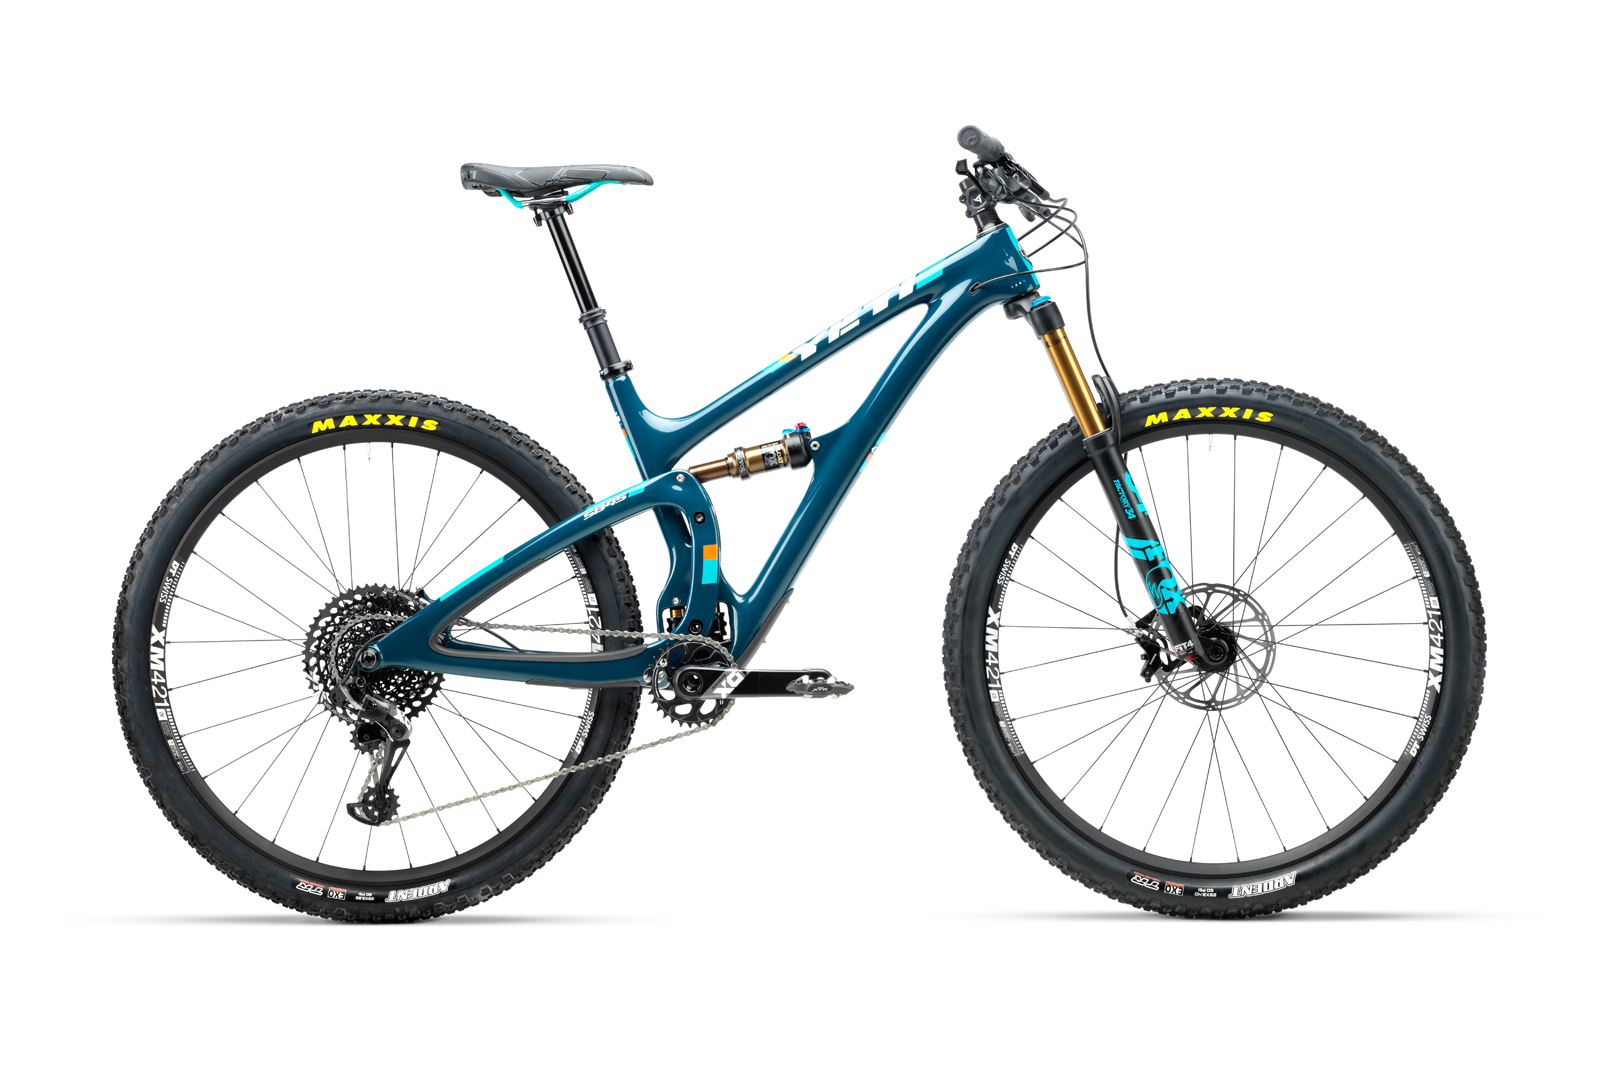 16002018_YetiCycles_SB45_TS_Storm_X01